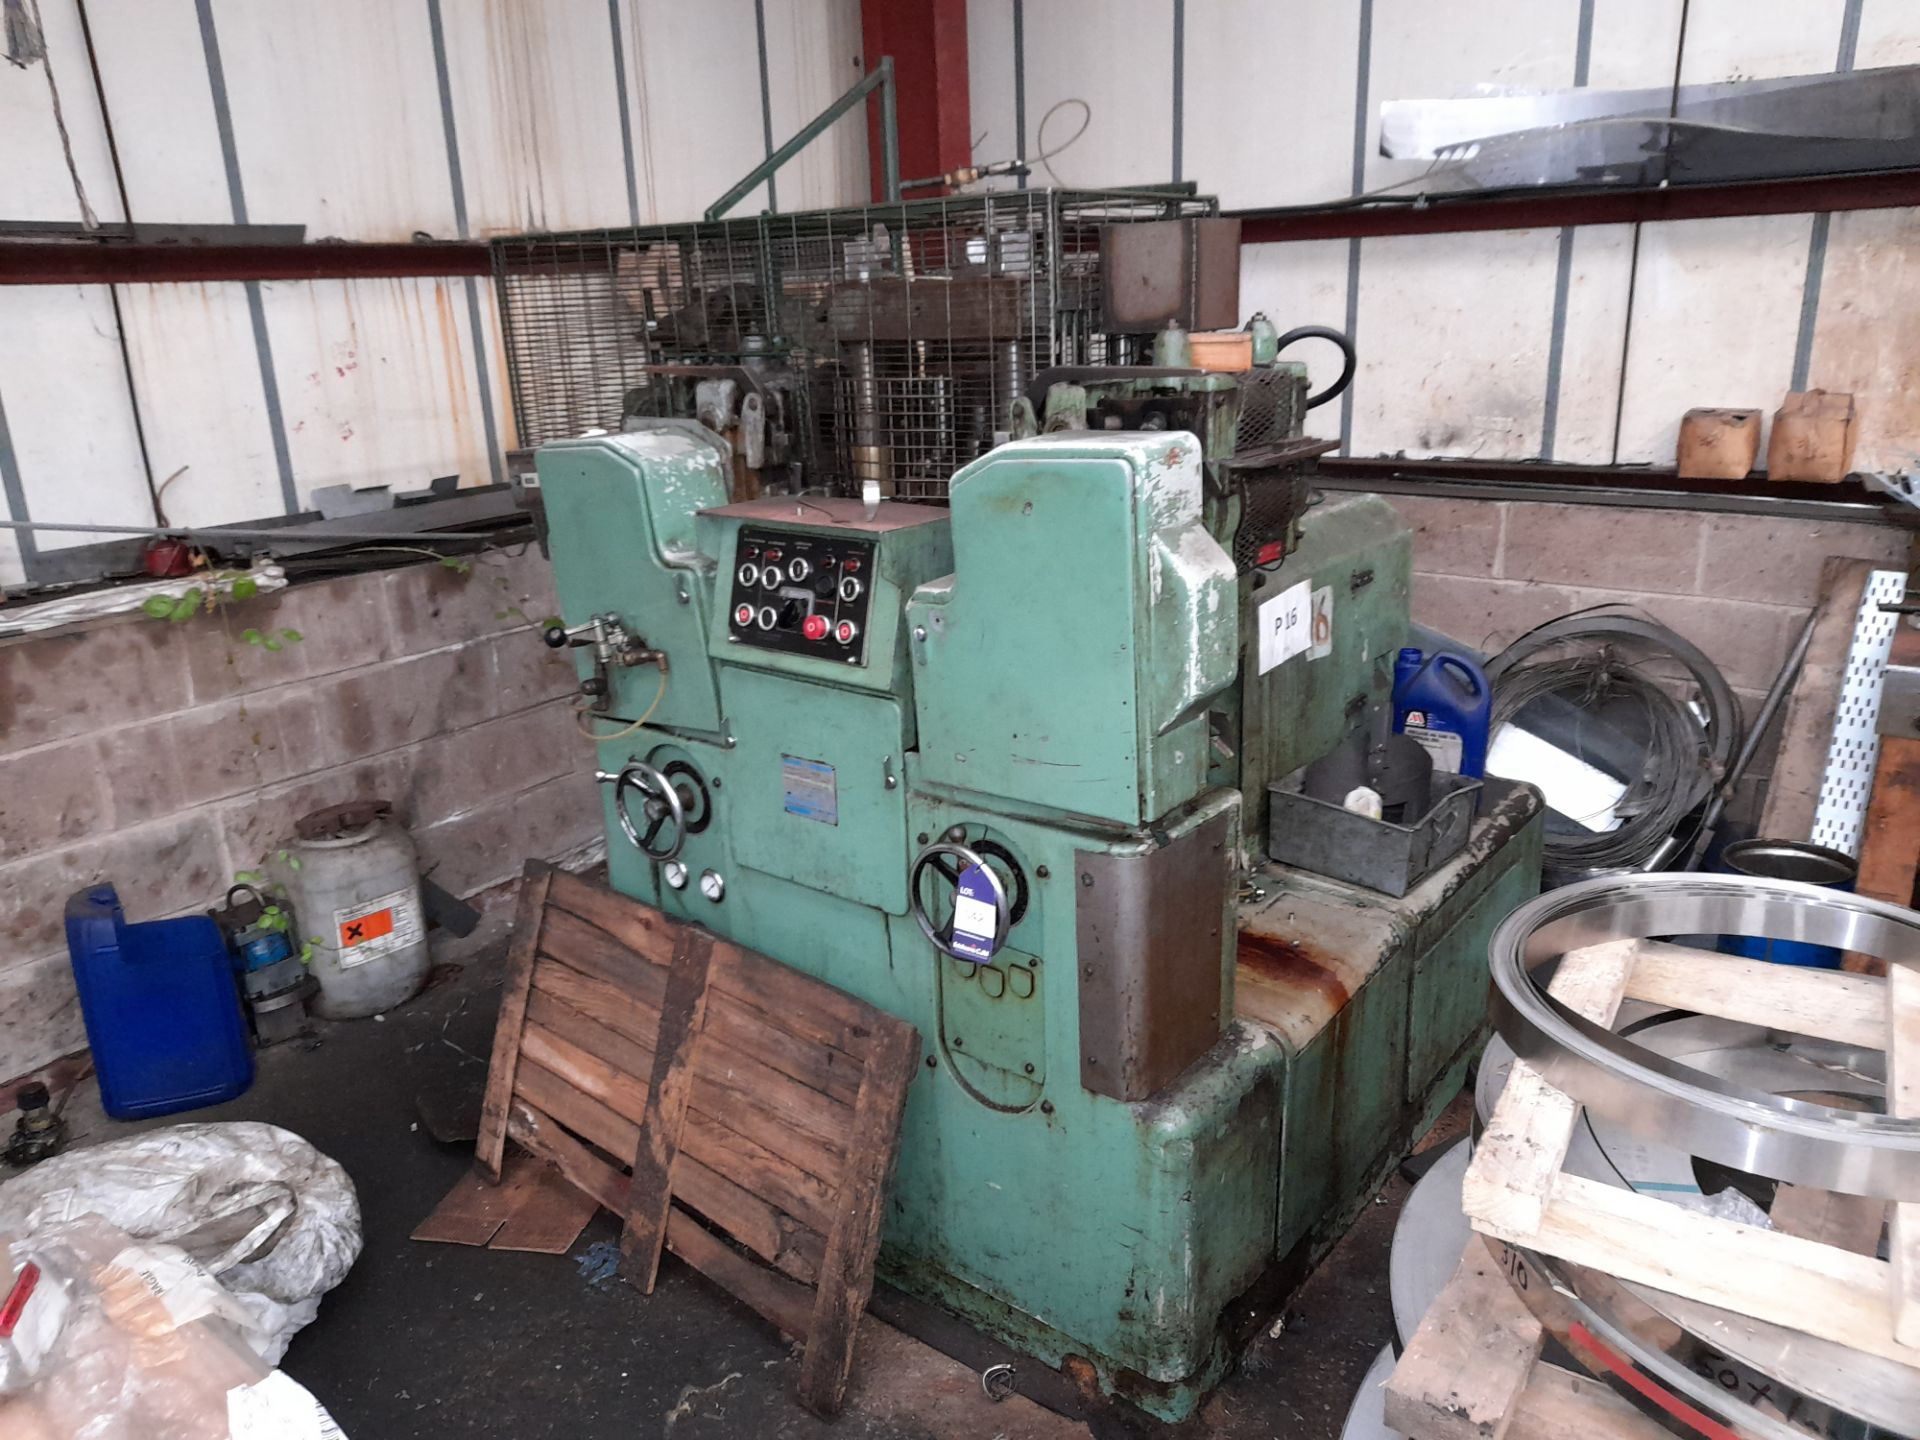 80 Rockwell 25 Ton DP MT/188T Multi Slide Forming Press with 10mm Raschig Ring Tool